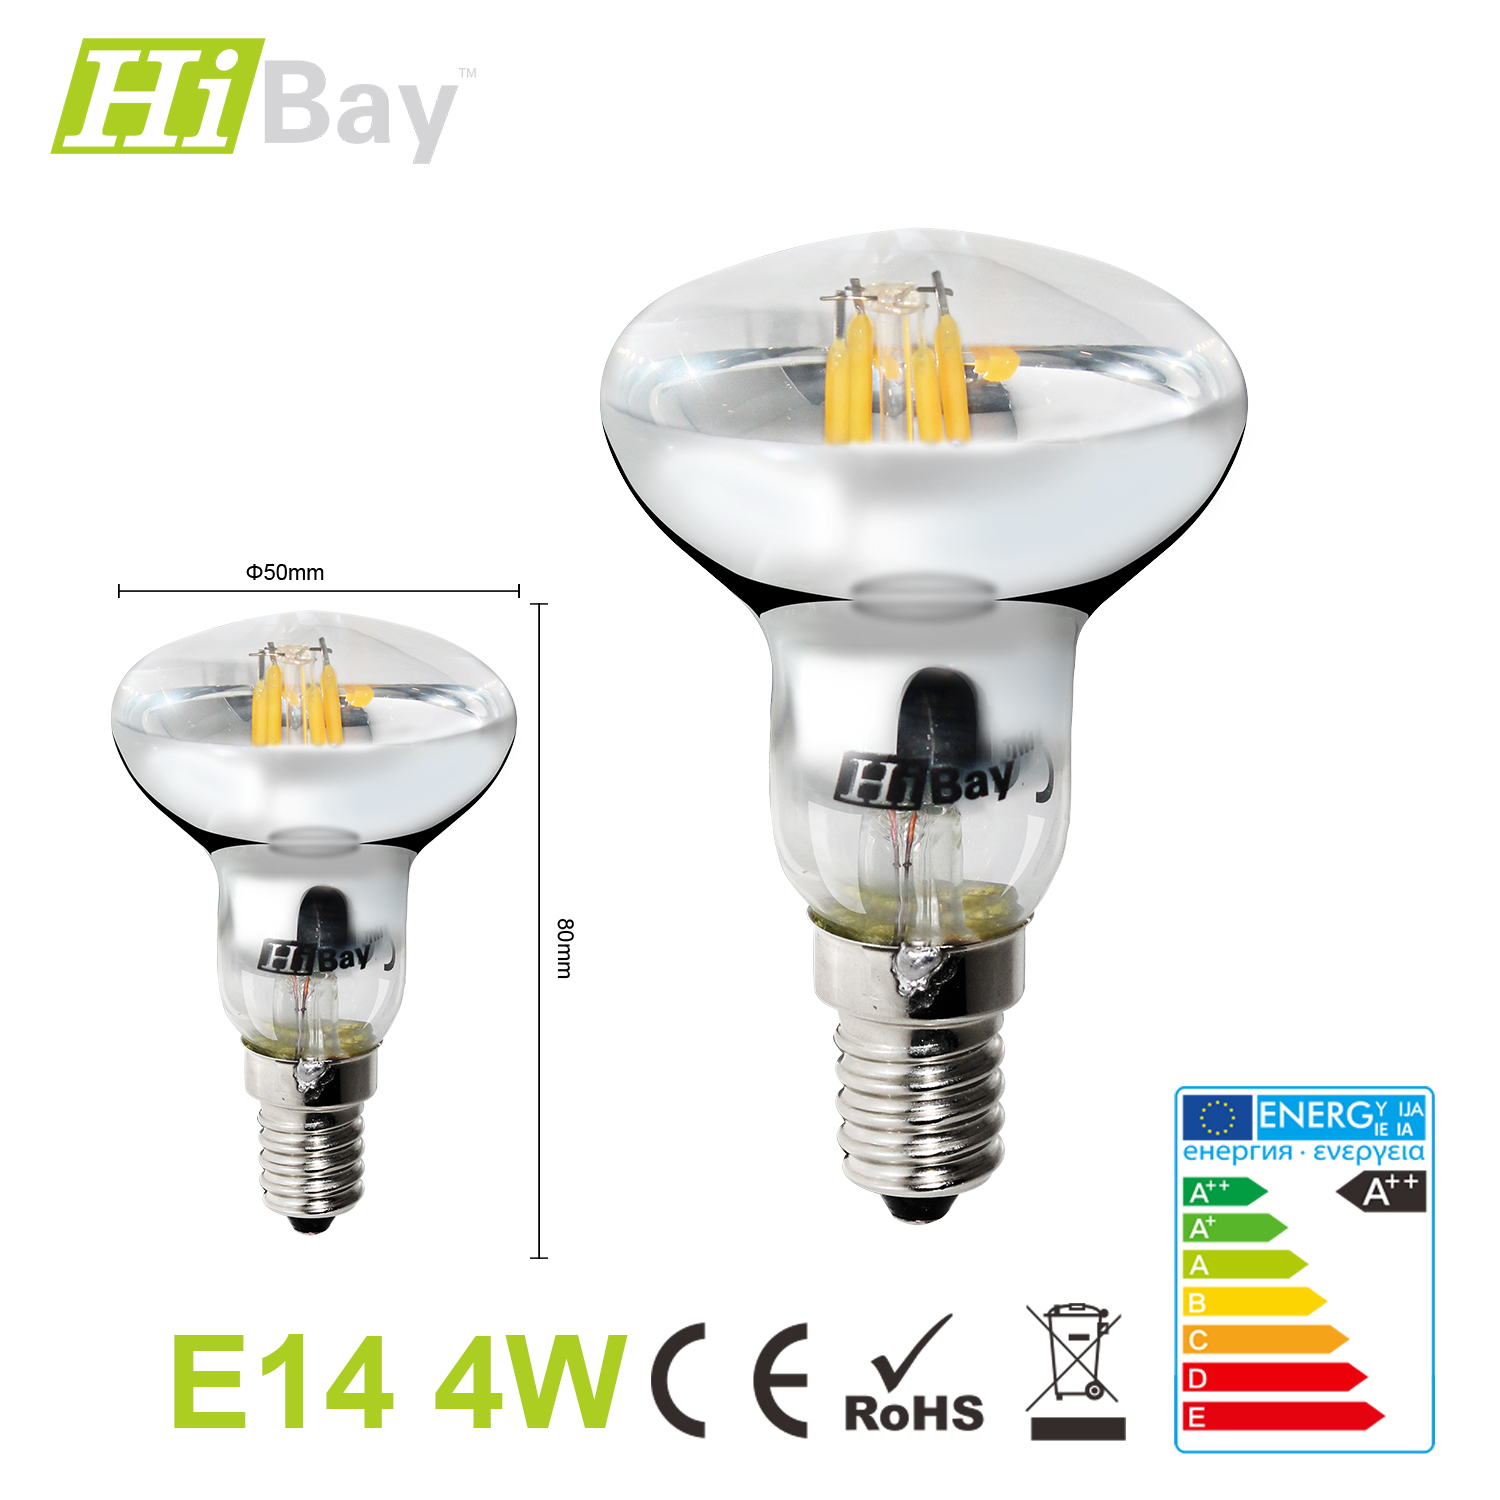 Retro Led E27 Retro Edison Led Filament Light Bulbs Vintage E14 E27 B22